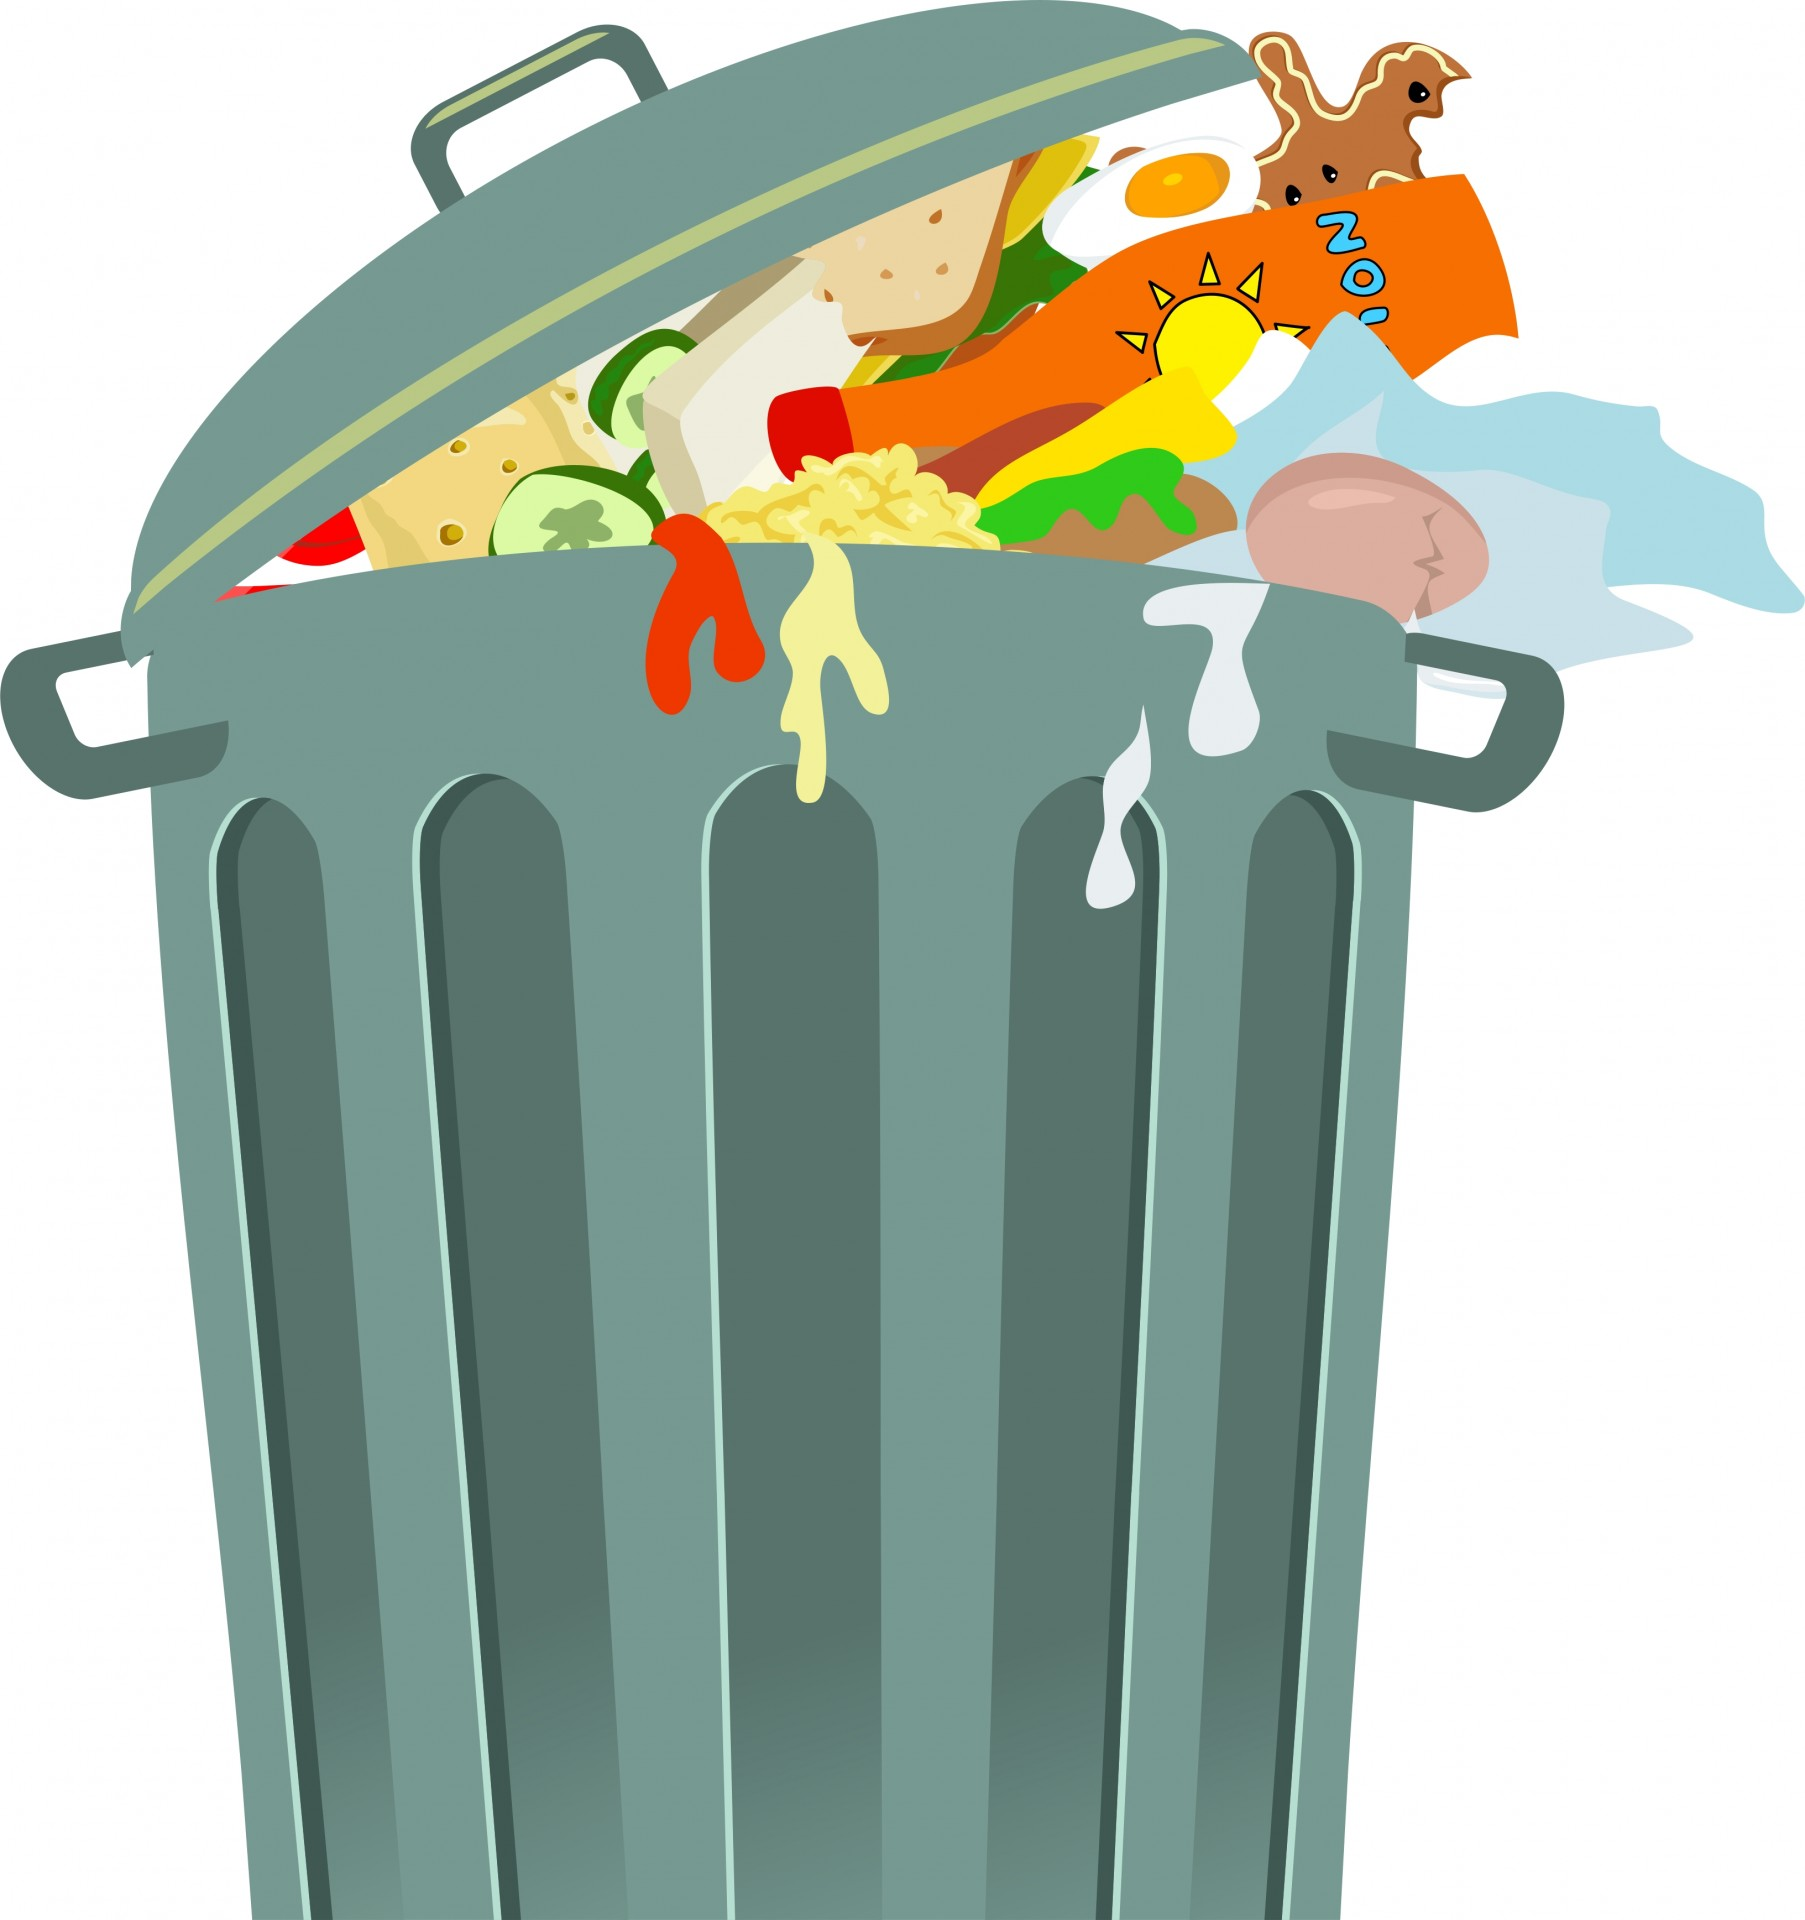 trashcan clipart